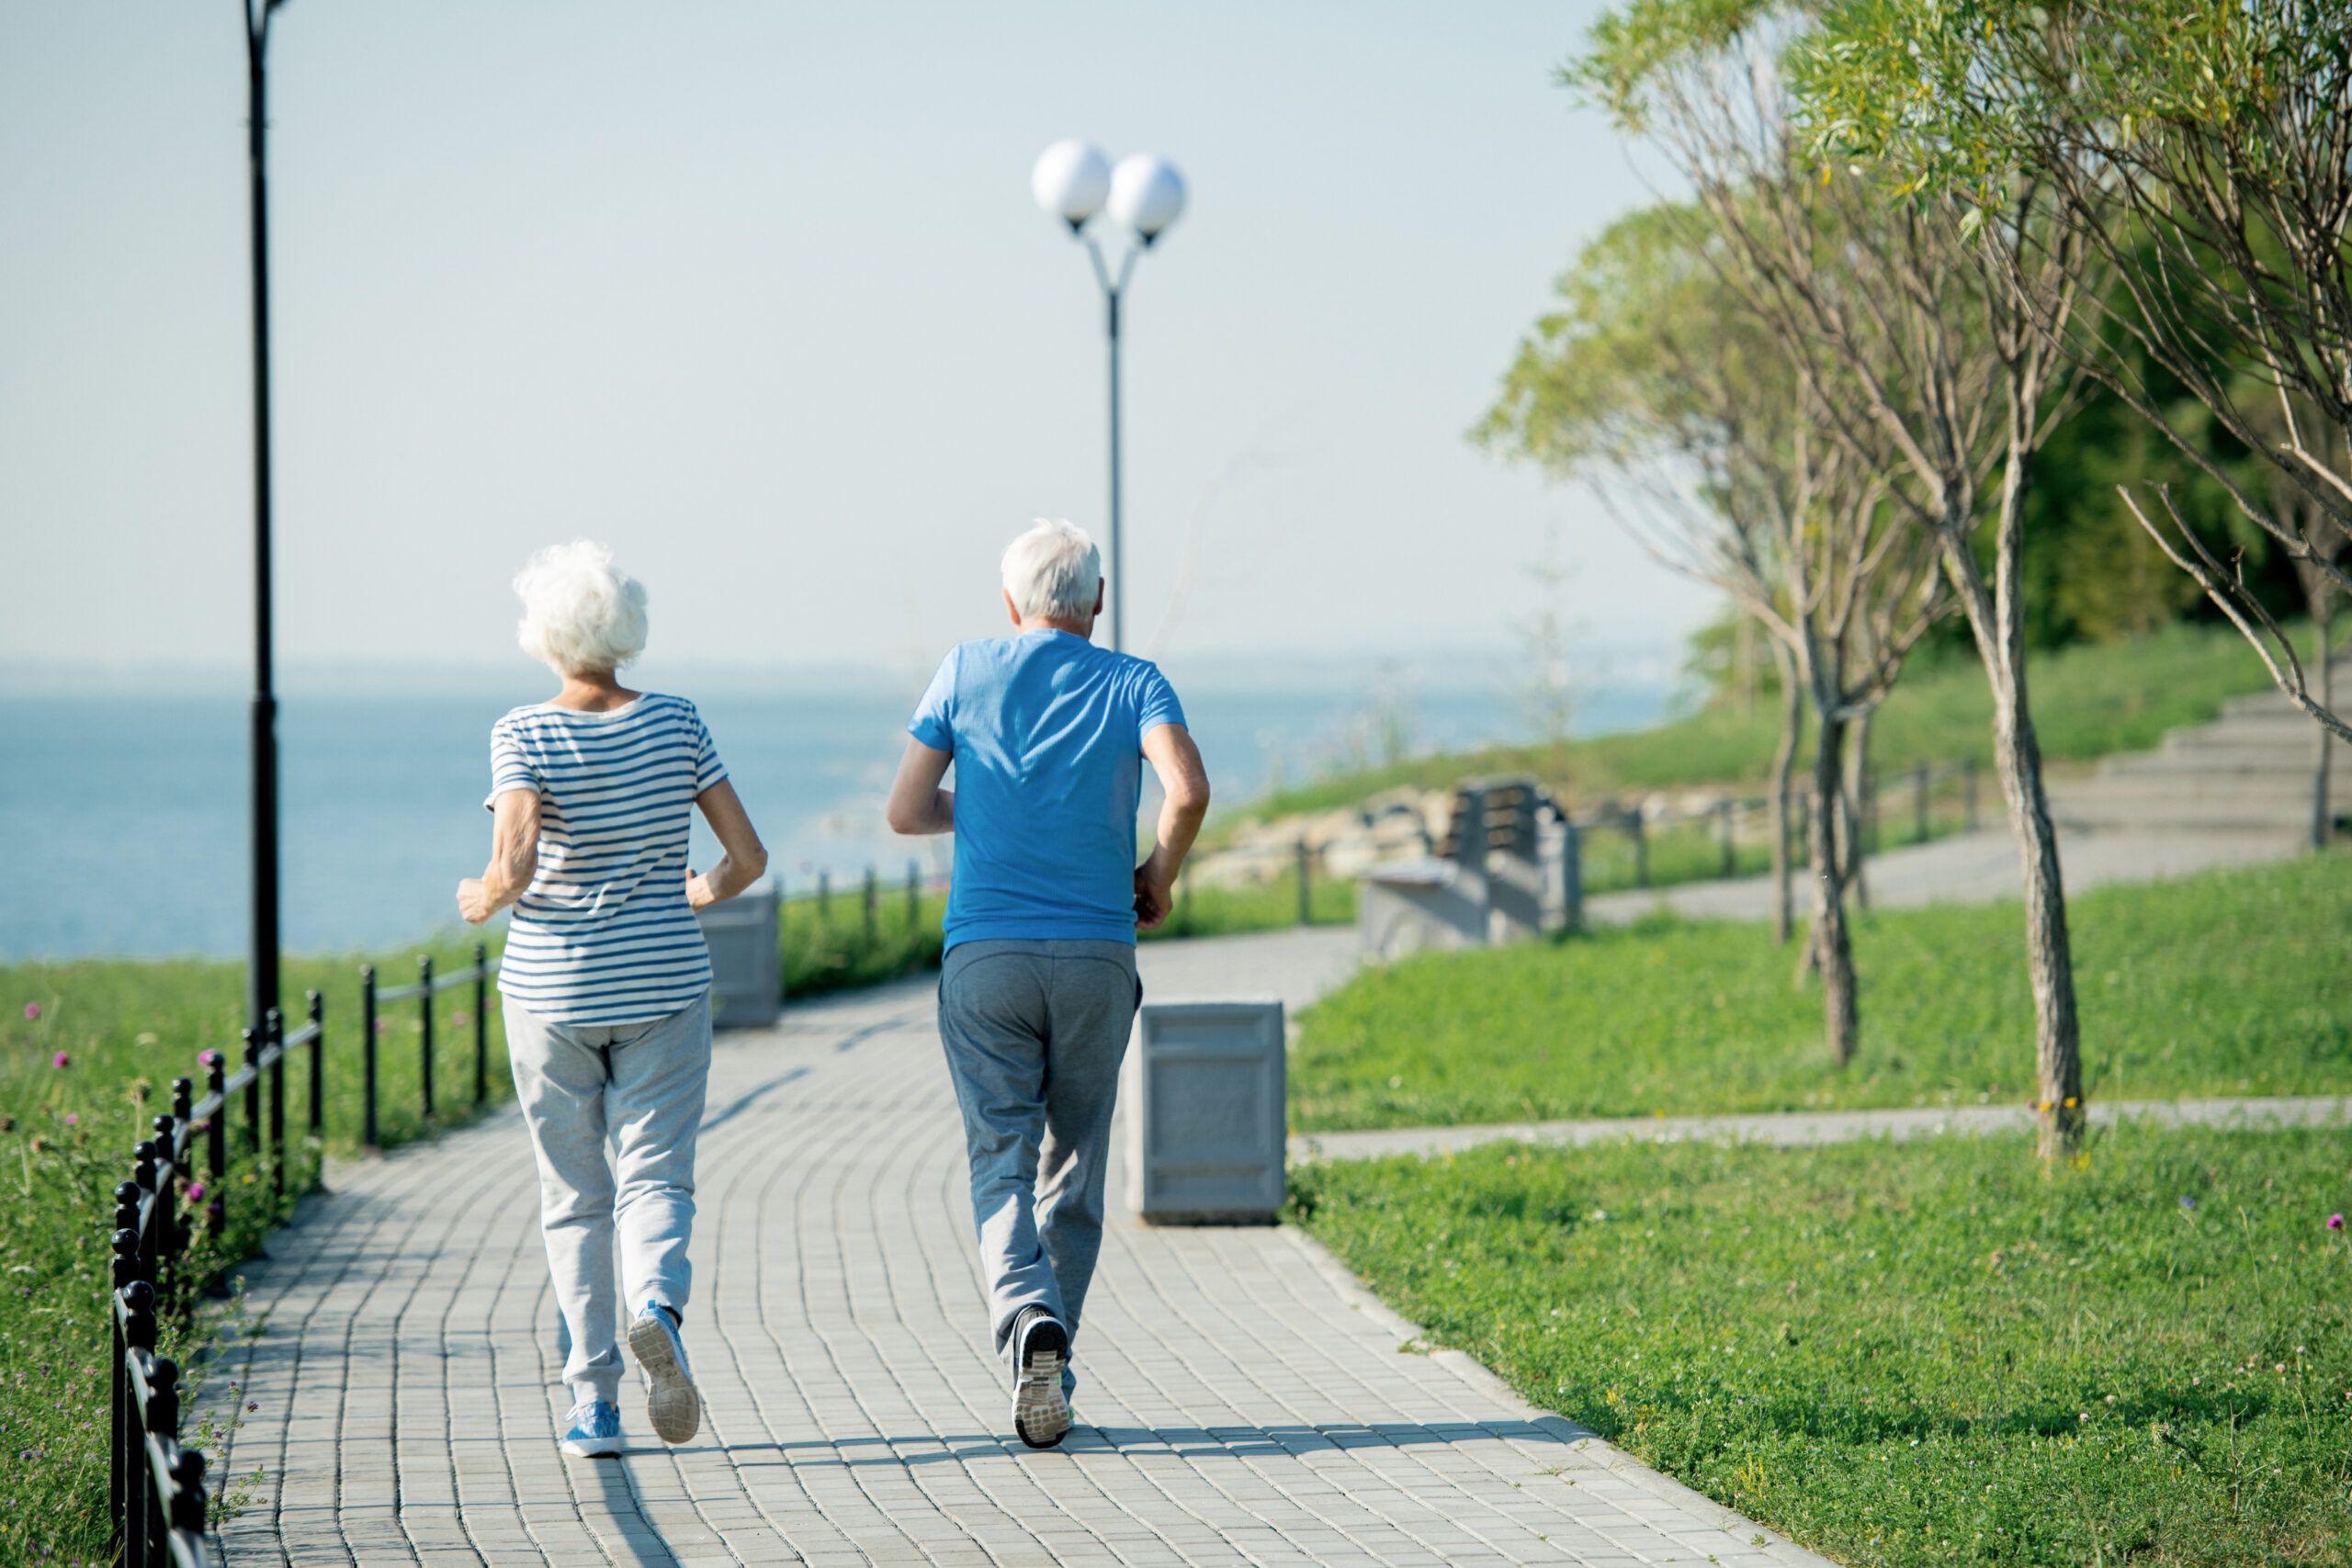 Ageing is inevitable. But is Deterioration?